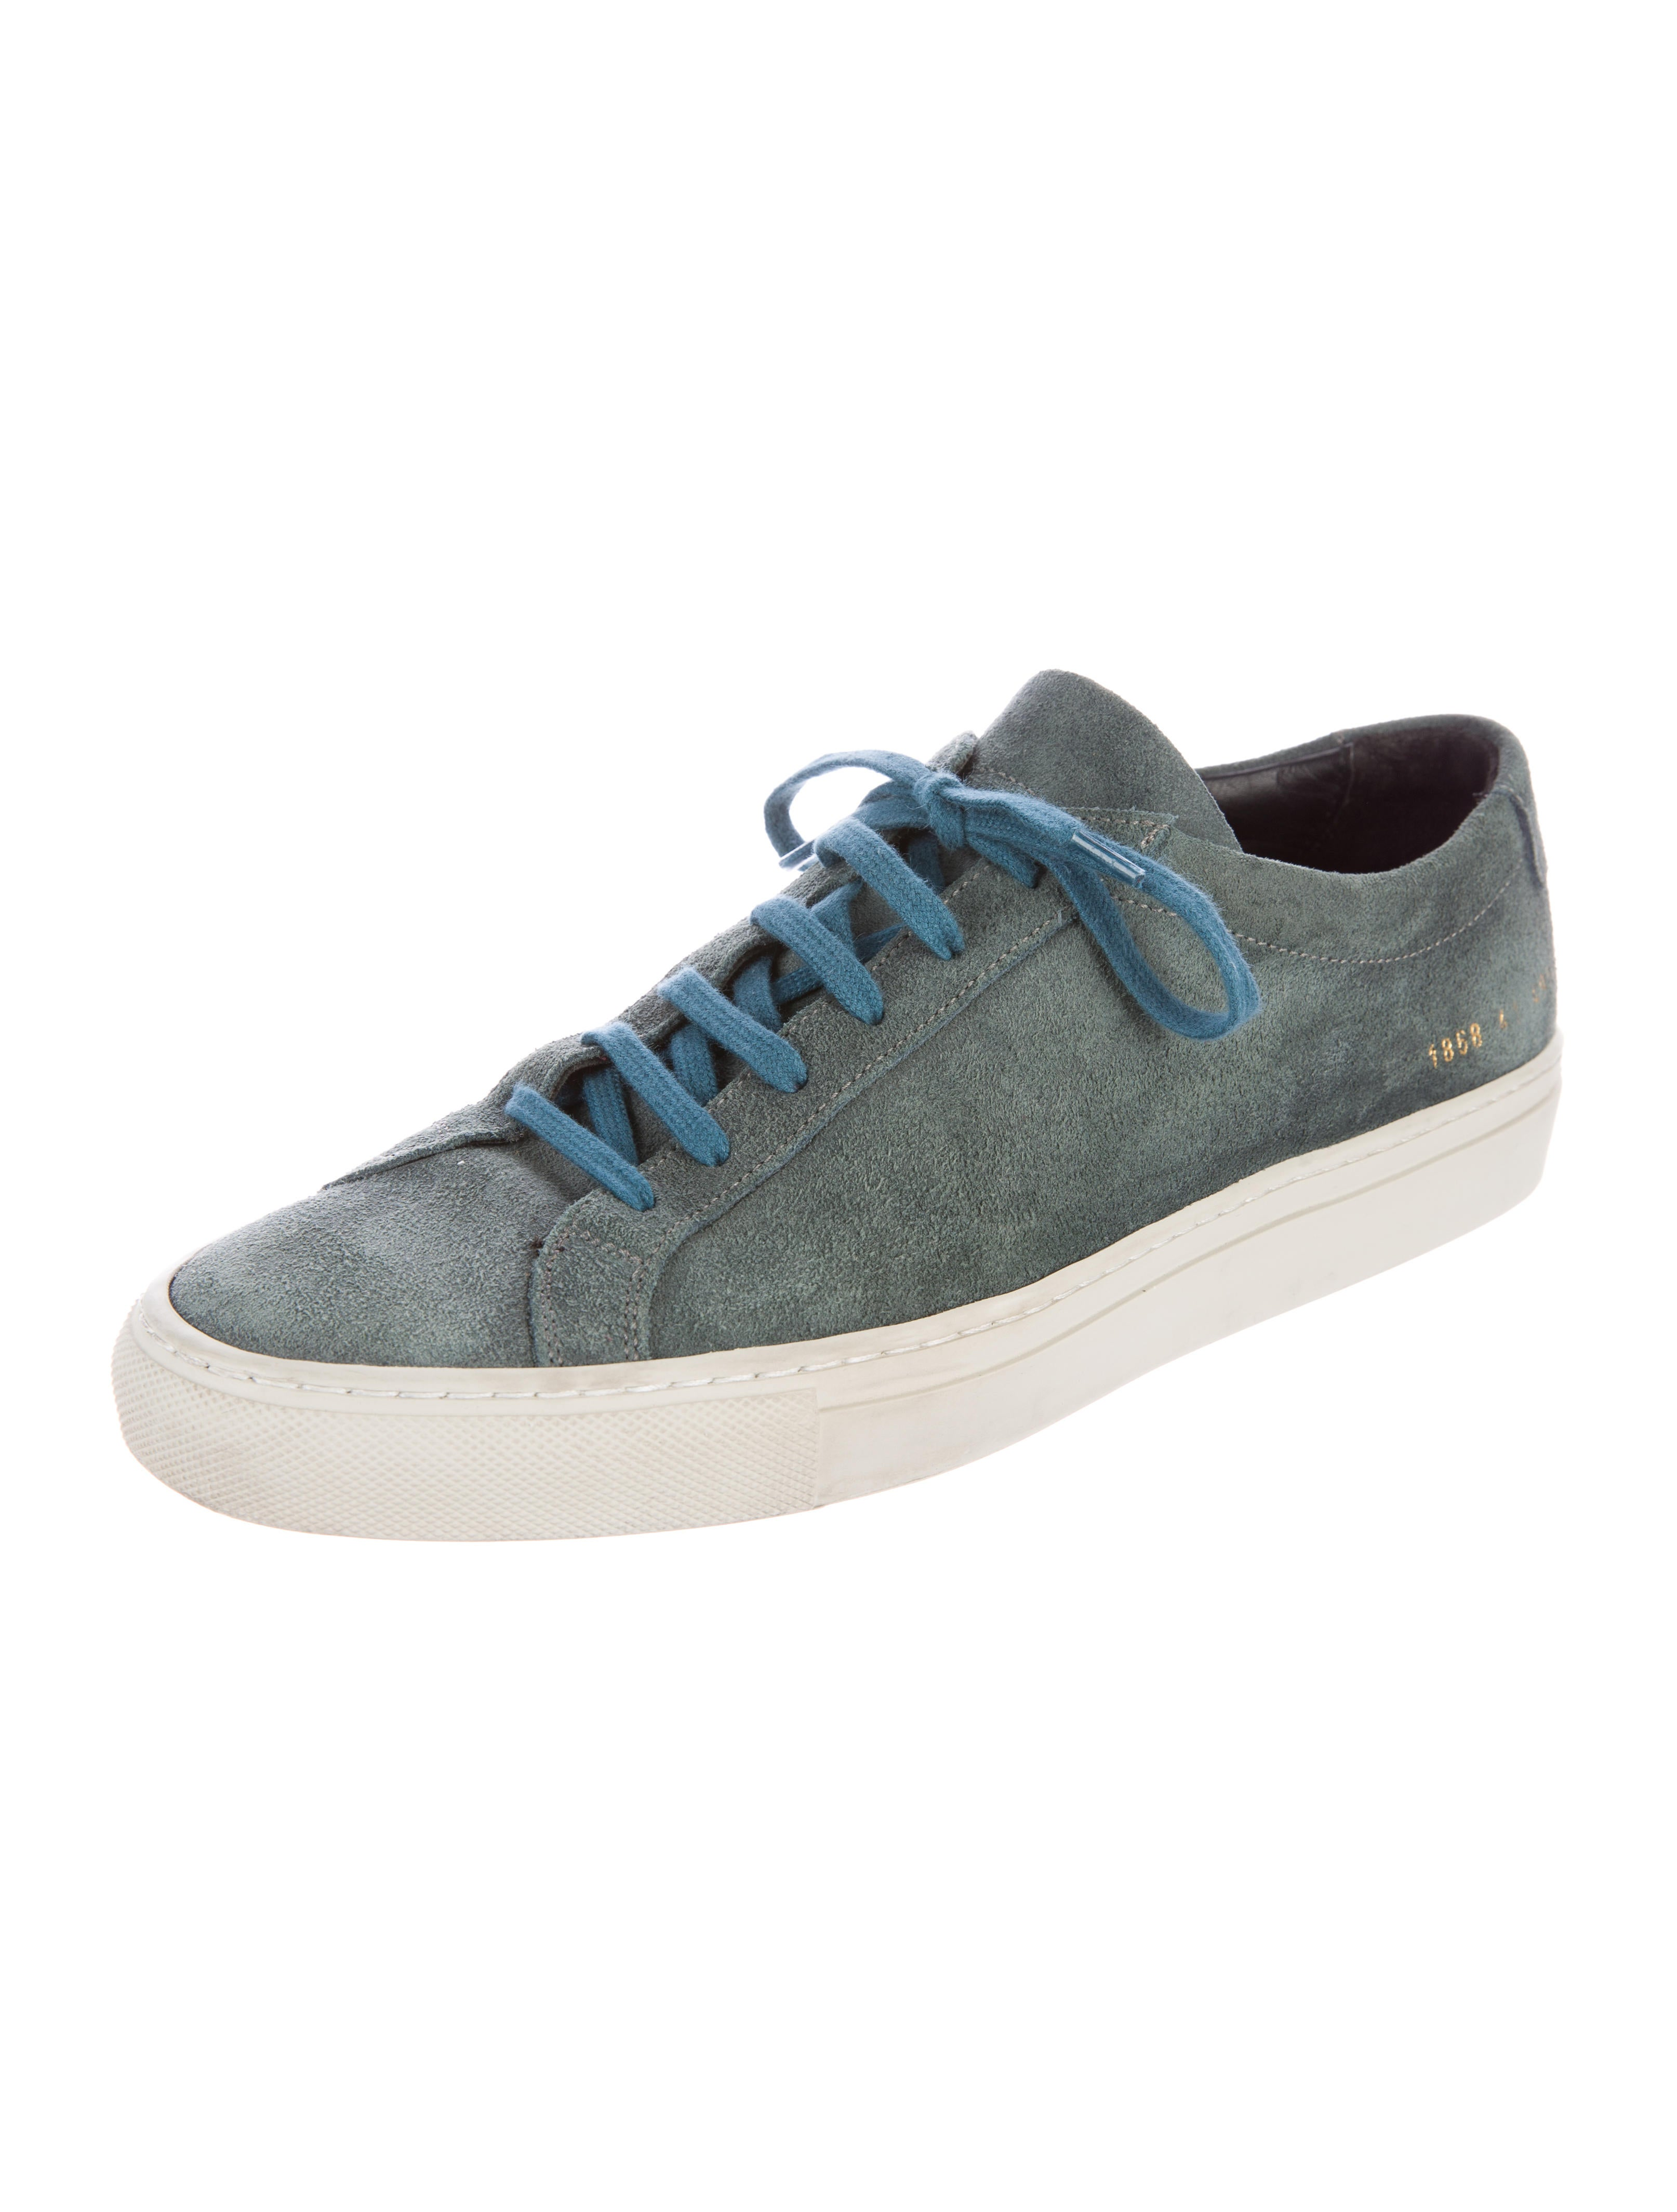 common projects sneakers sale 28 images common projects grey original perforated achilles. Black Bedroom Furniture Sets. Home Design Ideas